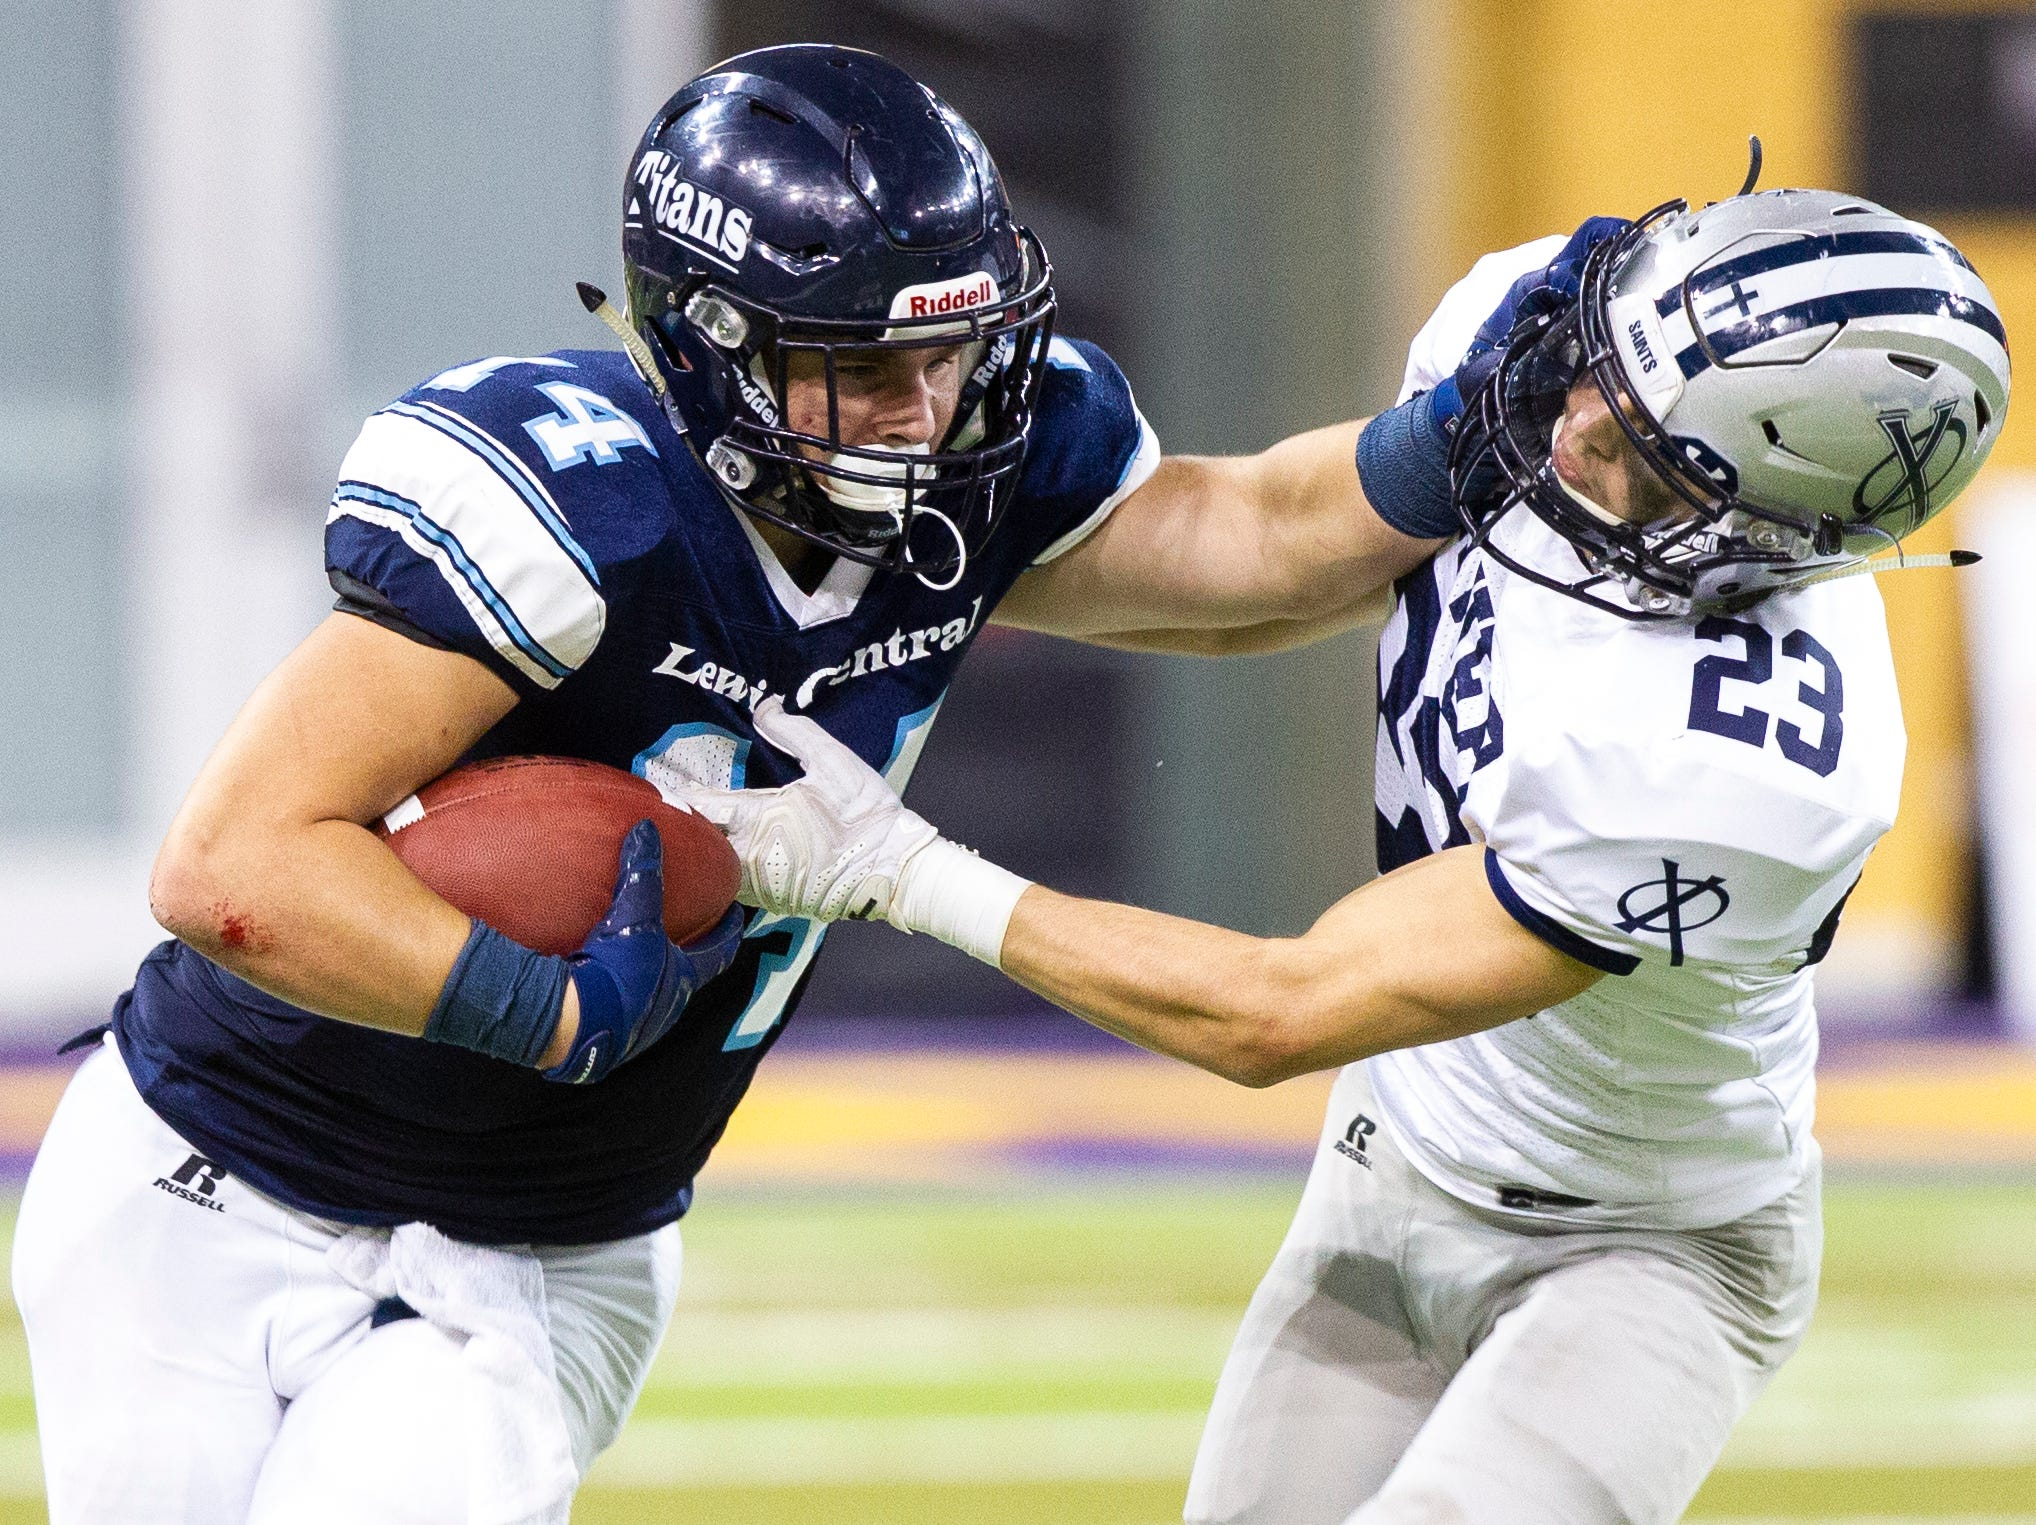 Lewis Central's Josh Simmons (14) stiff arms Cedar Rapids Xavier's Michael Gundacker (23) during a Class 3A semi finals on Thursday, Nov. 8, 2018, at the UNI-Dome in Cedar Falls.